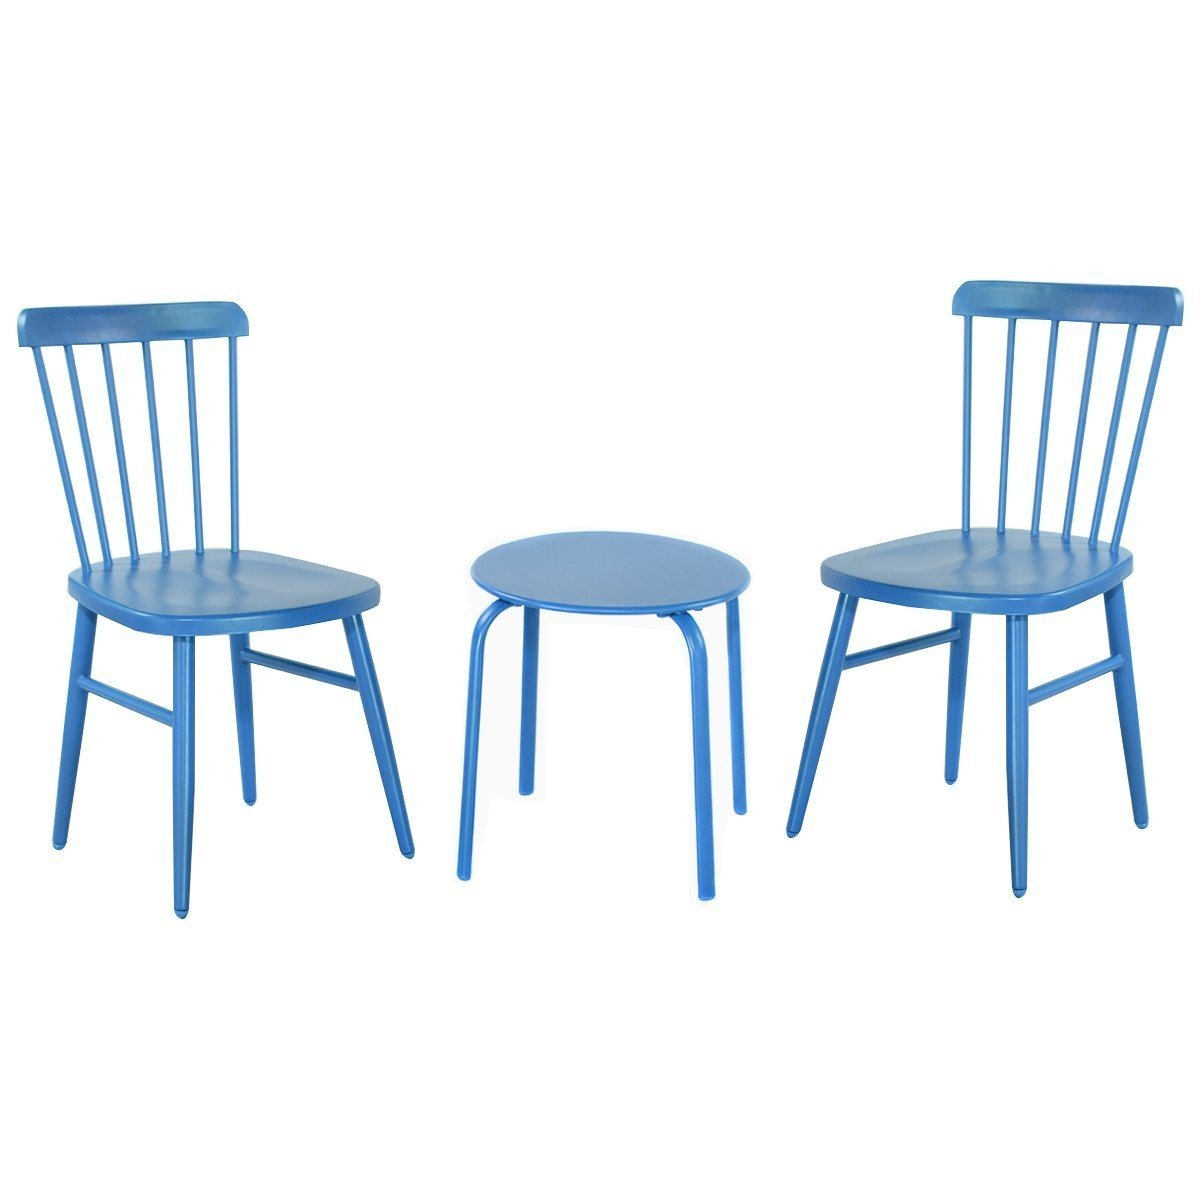 3 pcs Bistro Steel Table and Chair - Blue + FREE E-Book